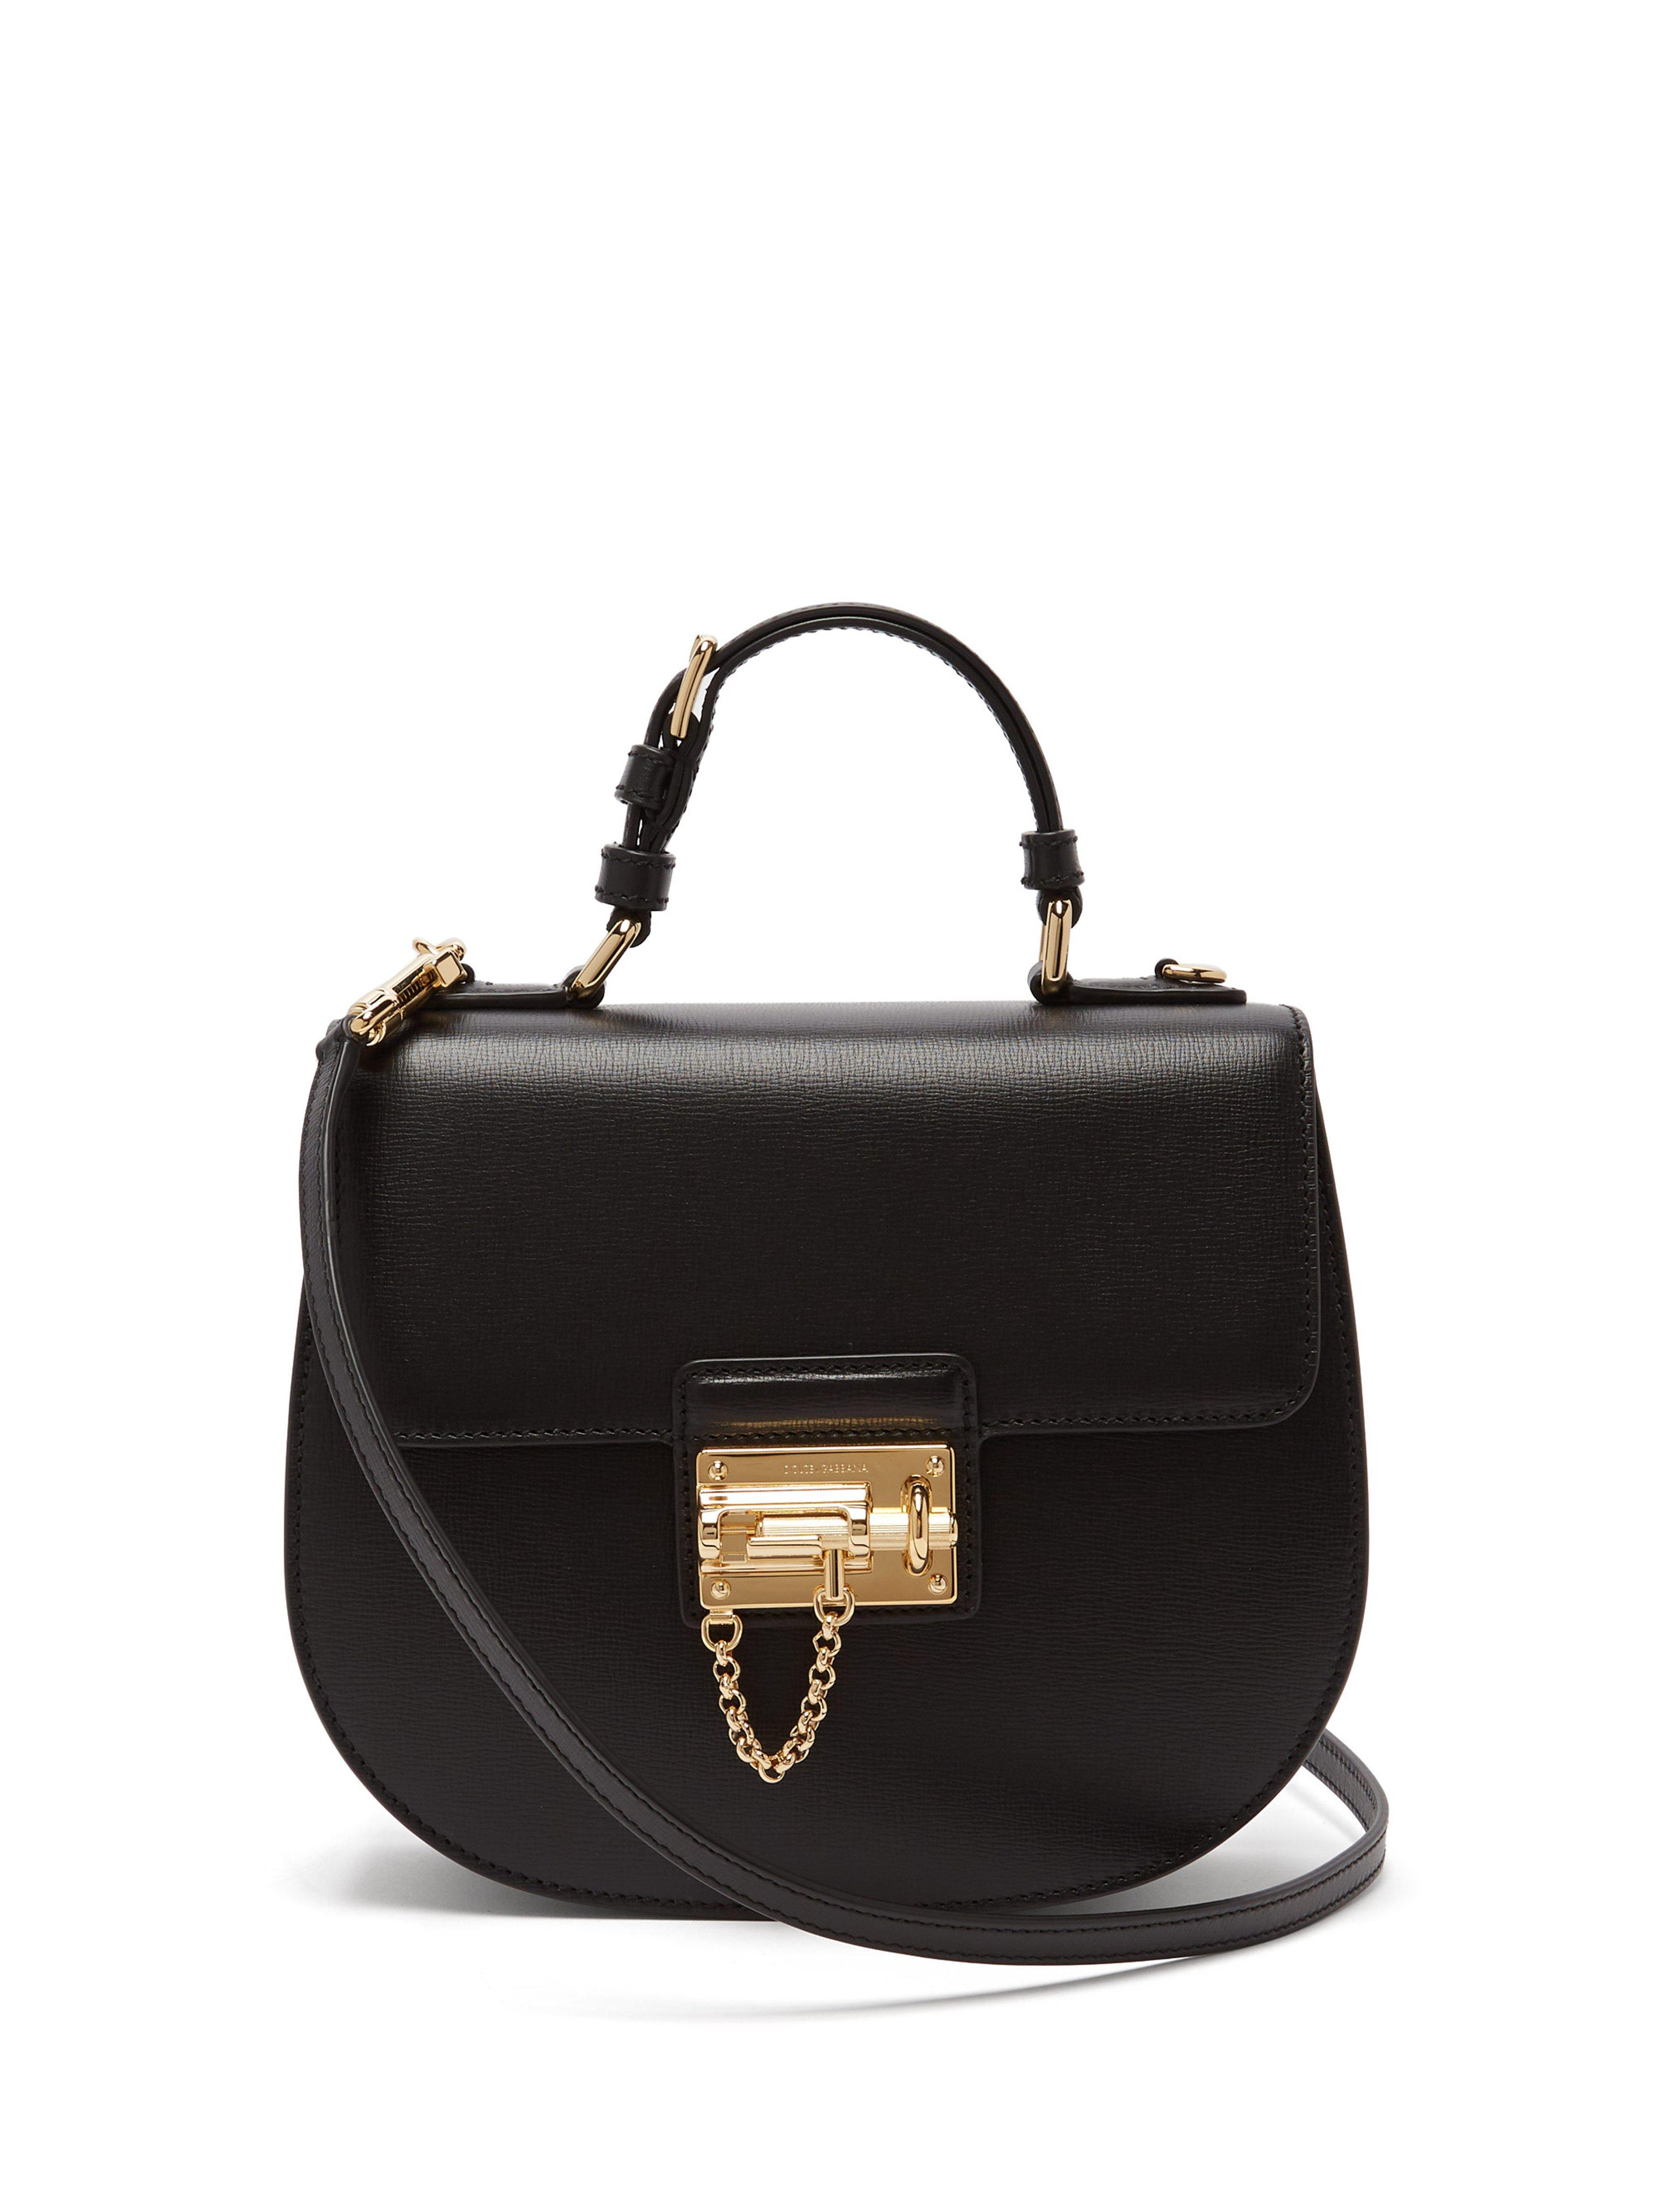 1f09c1a47e Dolce   Gabbana Monica Vintage Leather Bag in Black - Lyst